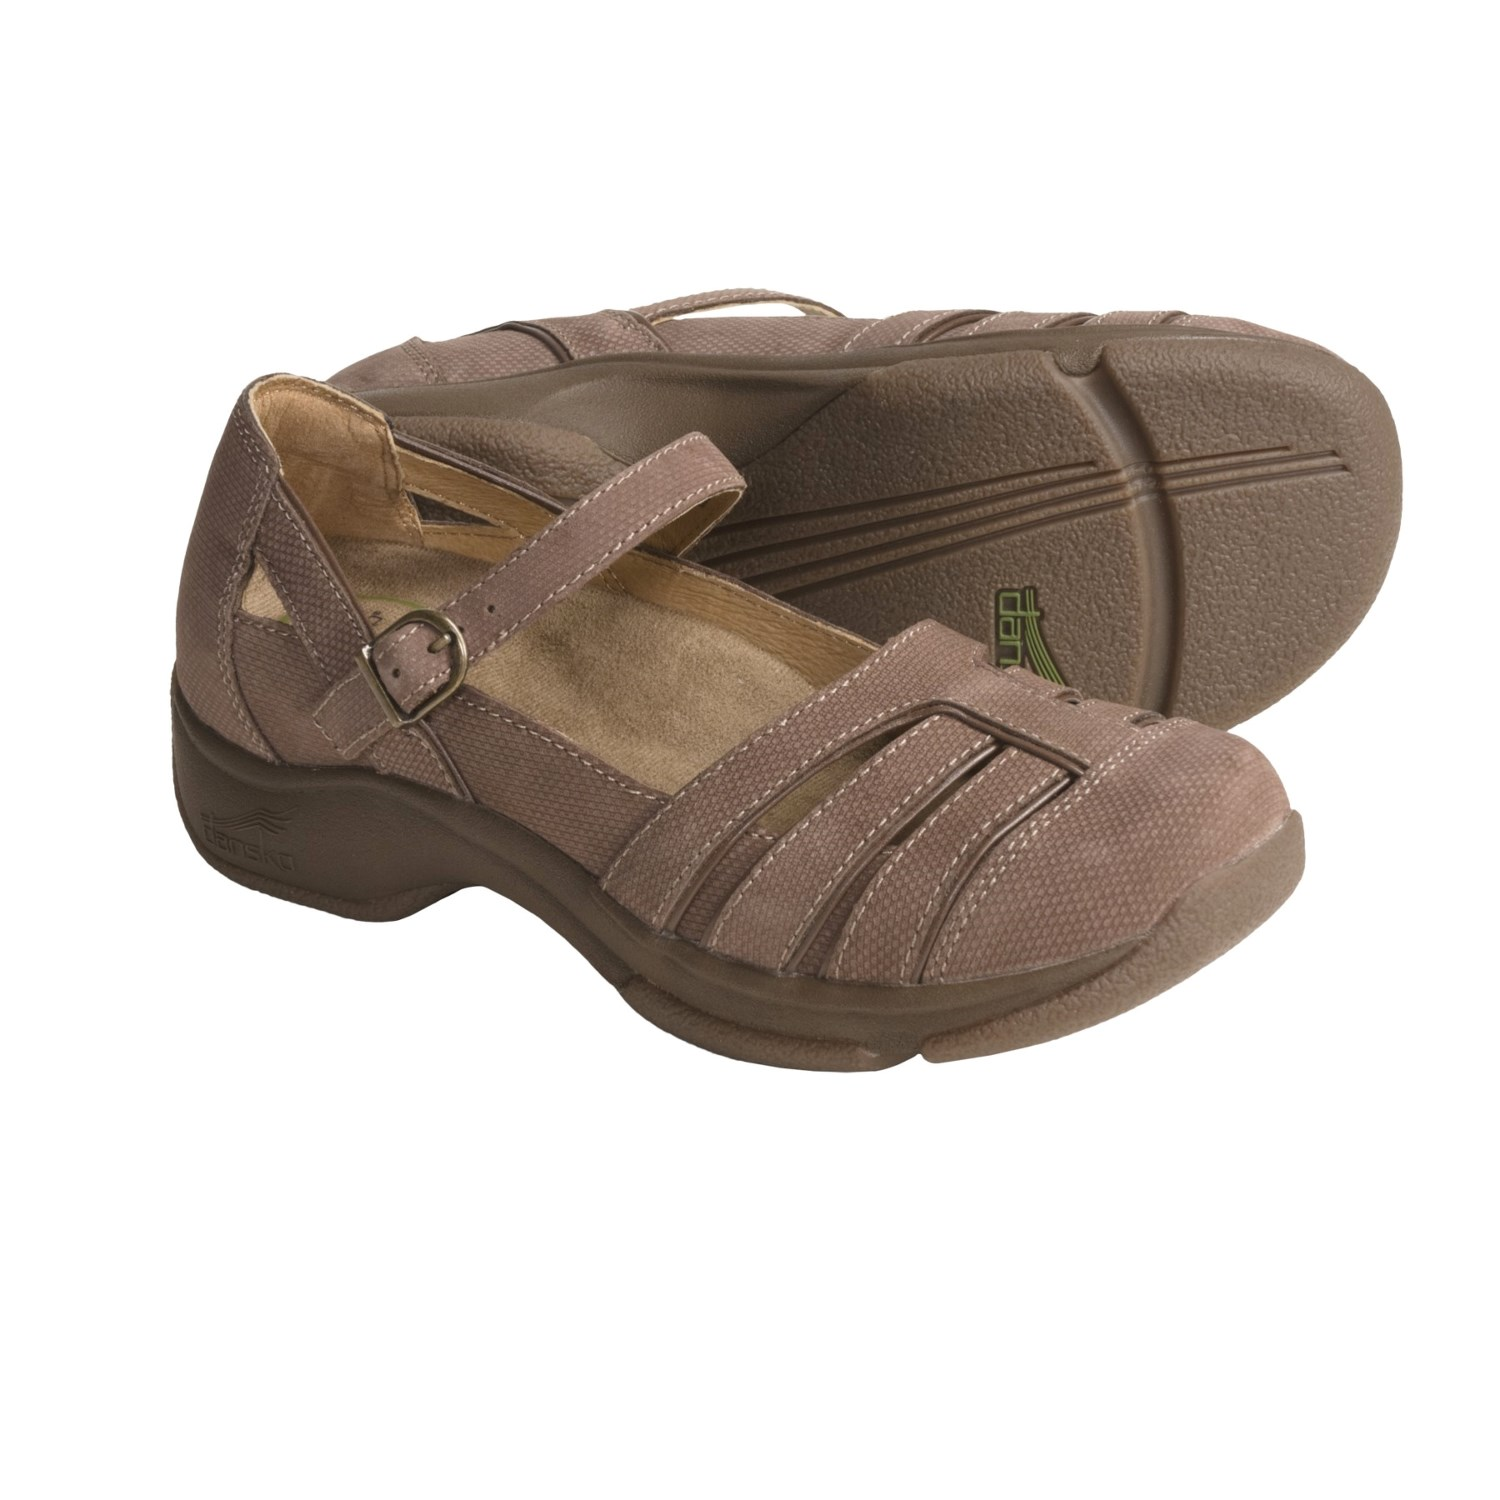 Dansko Kiera Shoes - Slip-Ons (For Women) in Latte